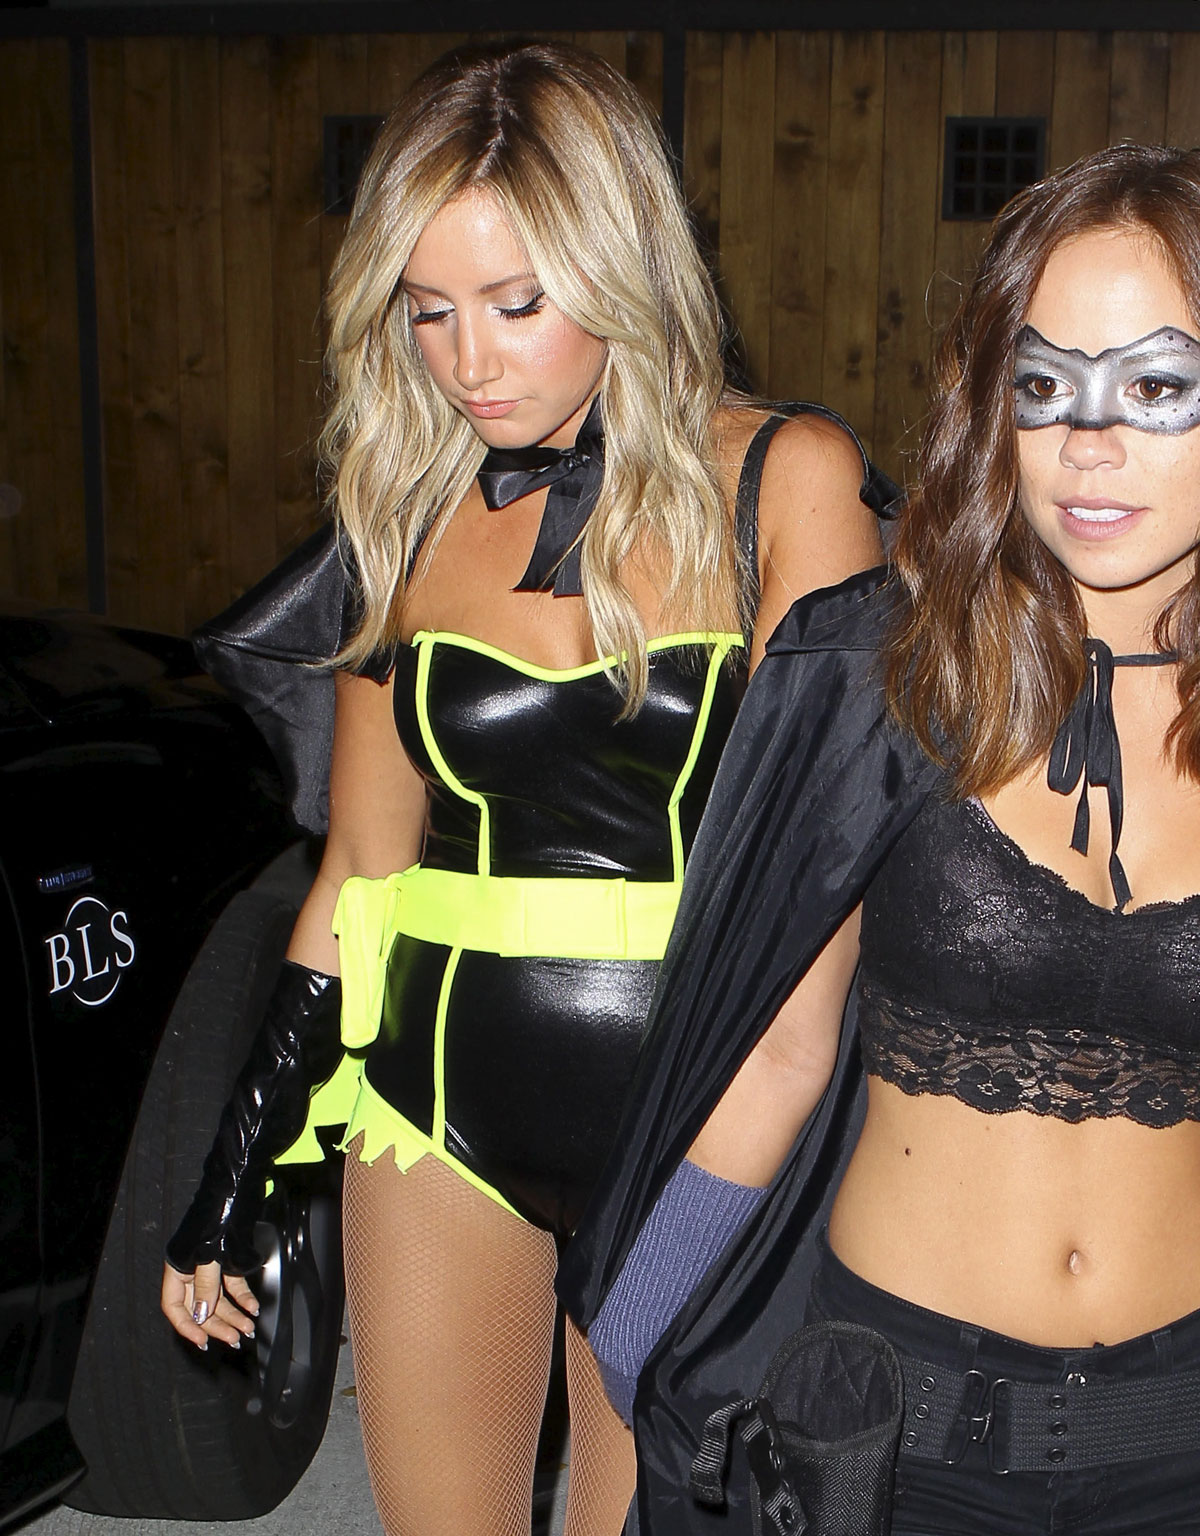 ashley tisdale in halloween costume at halloween party in la 08 full size - Ashley Tisdale Halloween